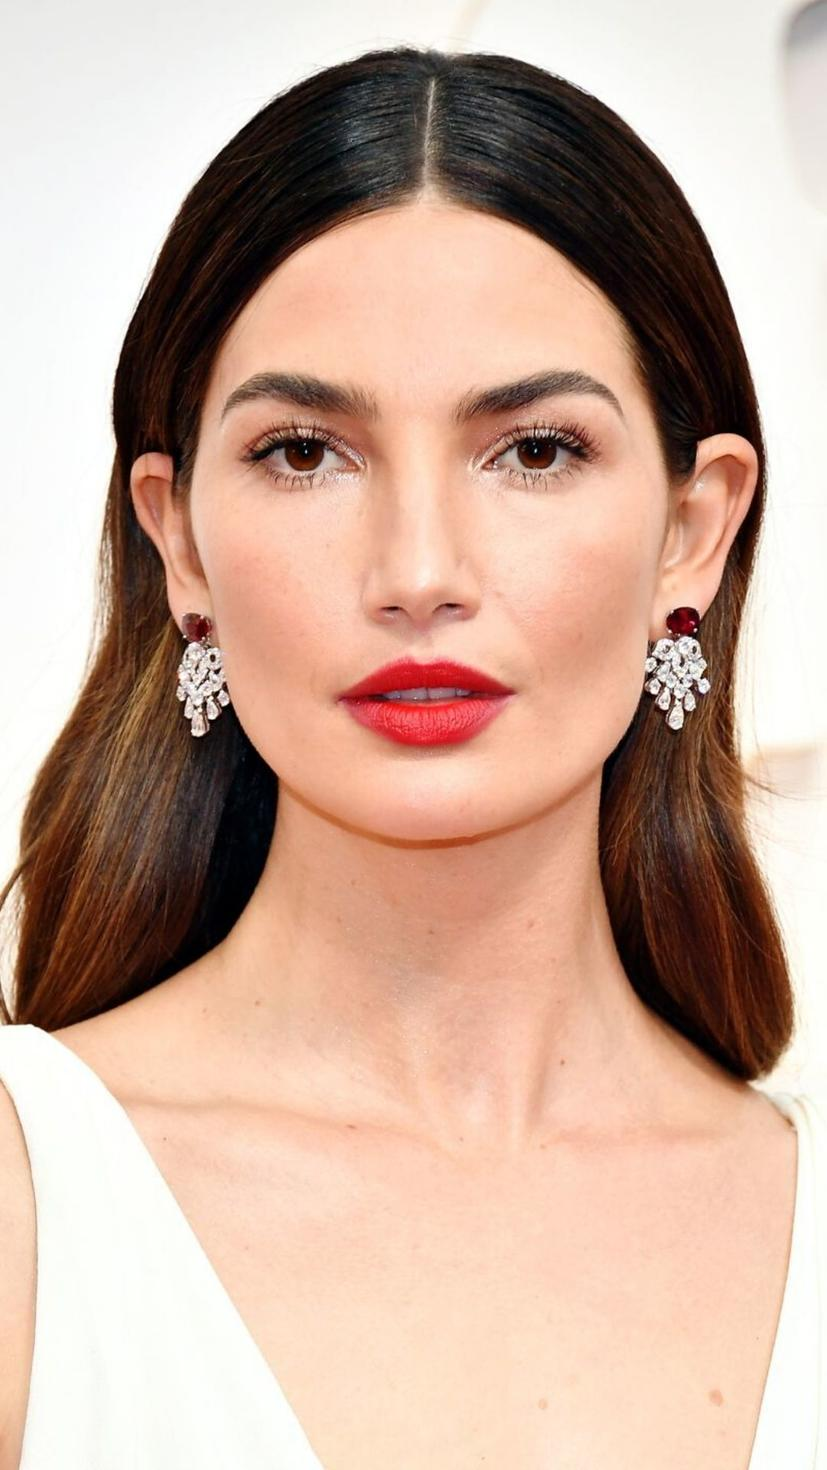 Lily Aldridge went with a classic, eye-popping red lipstick, shimmering eye-shadow and sealed the deal with a touch of mascara for those pretty lashes. With matching earrings to complete the look, we think she looks a-m-a-z-i-n-g!